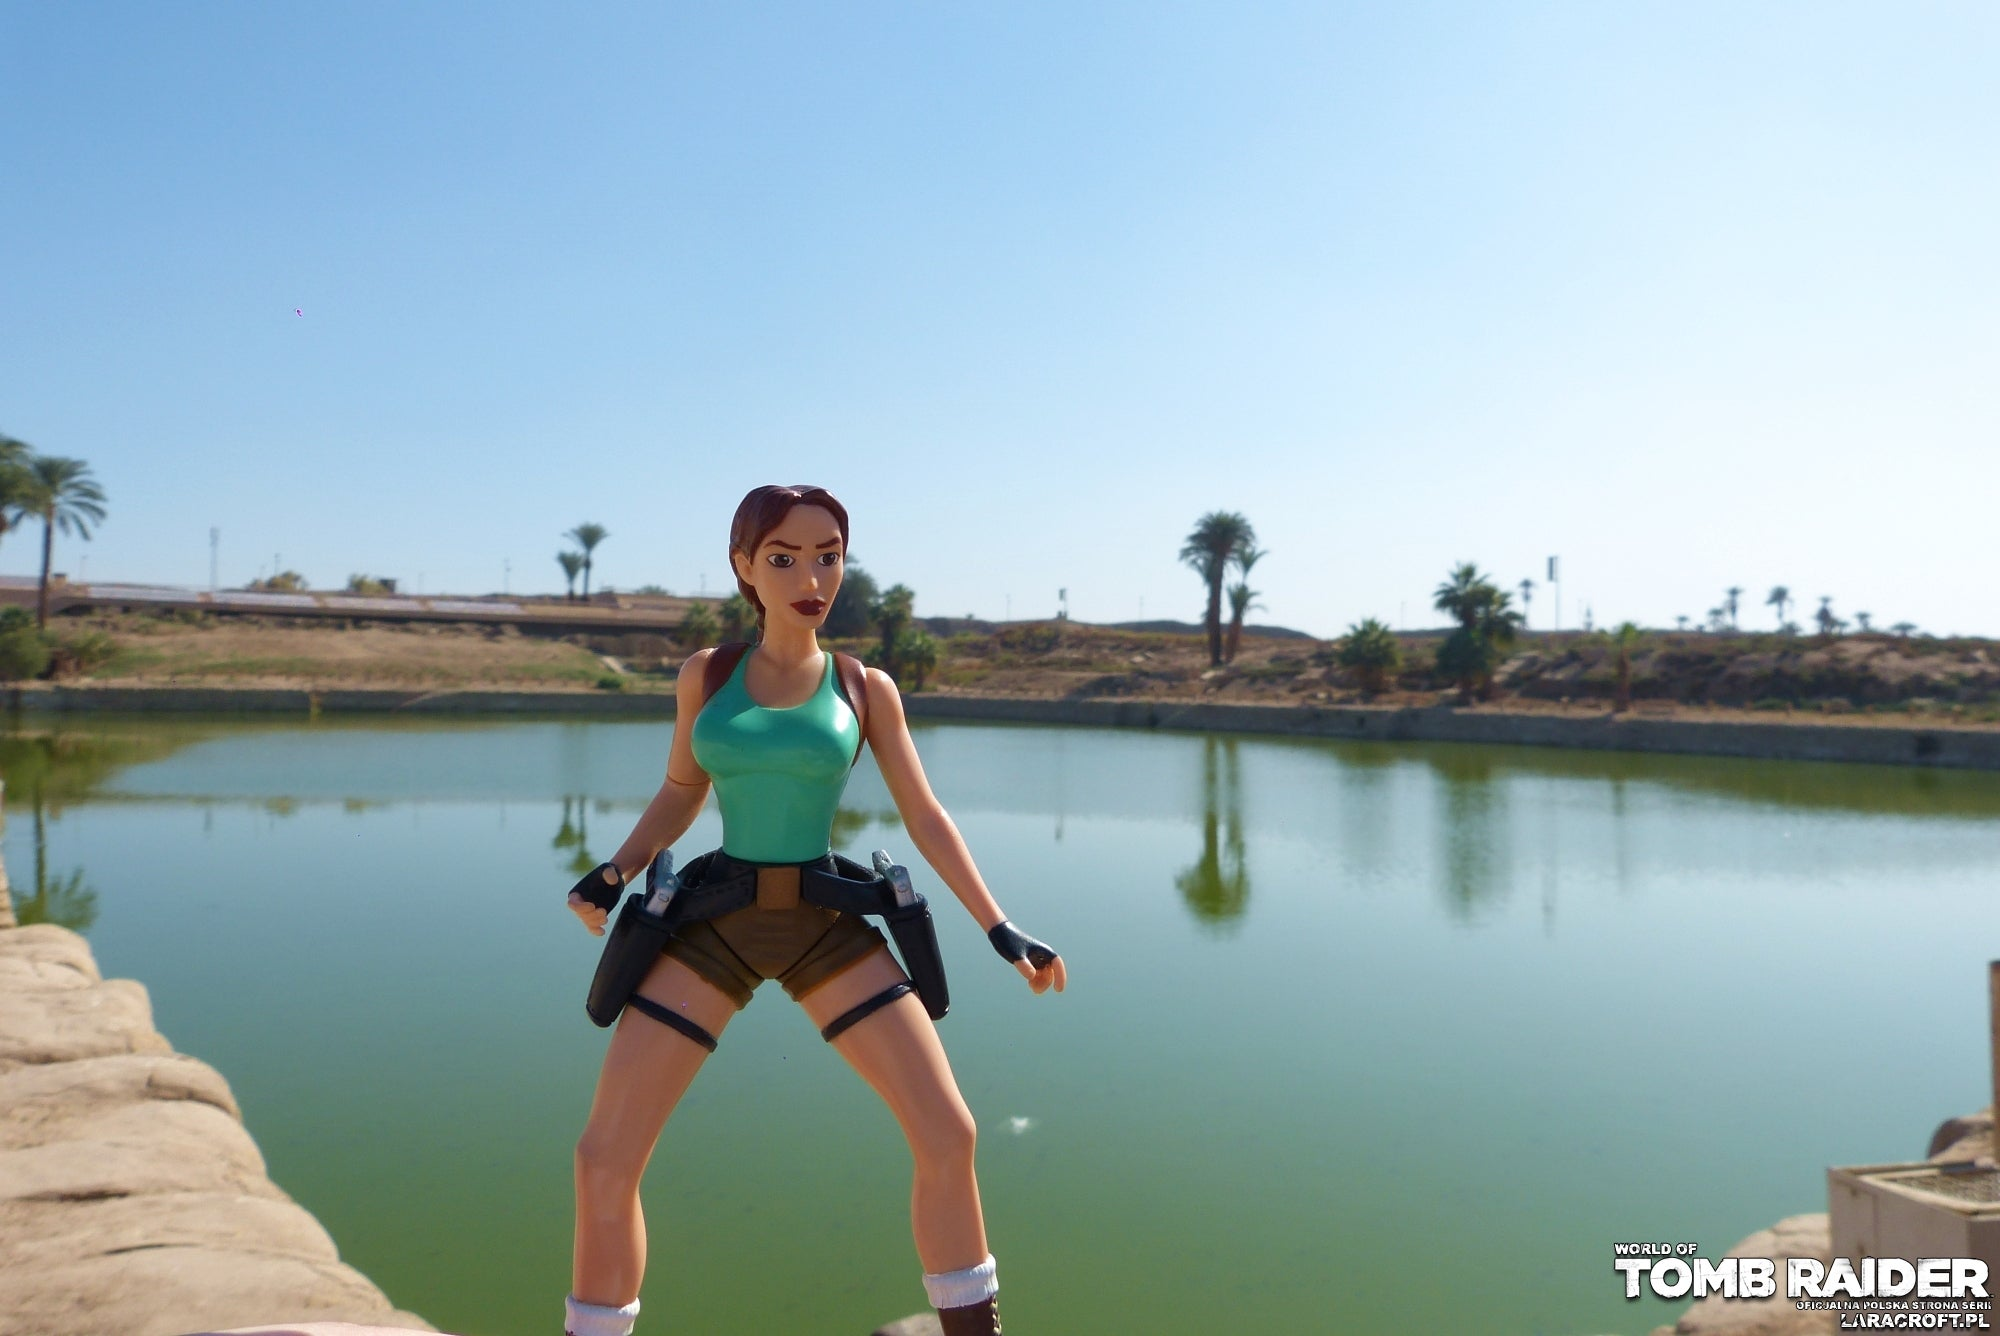 A photograph of a Lara Croft figure in front of the Sacred Lake in Egypt